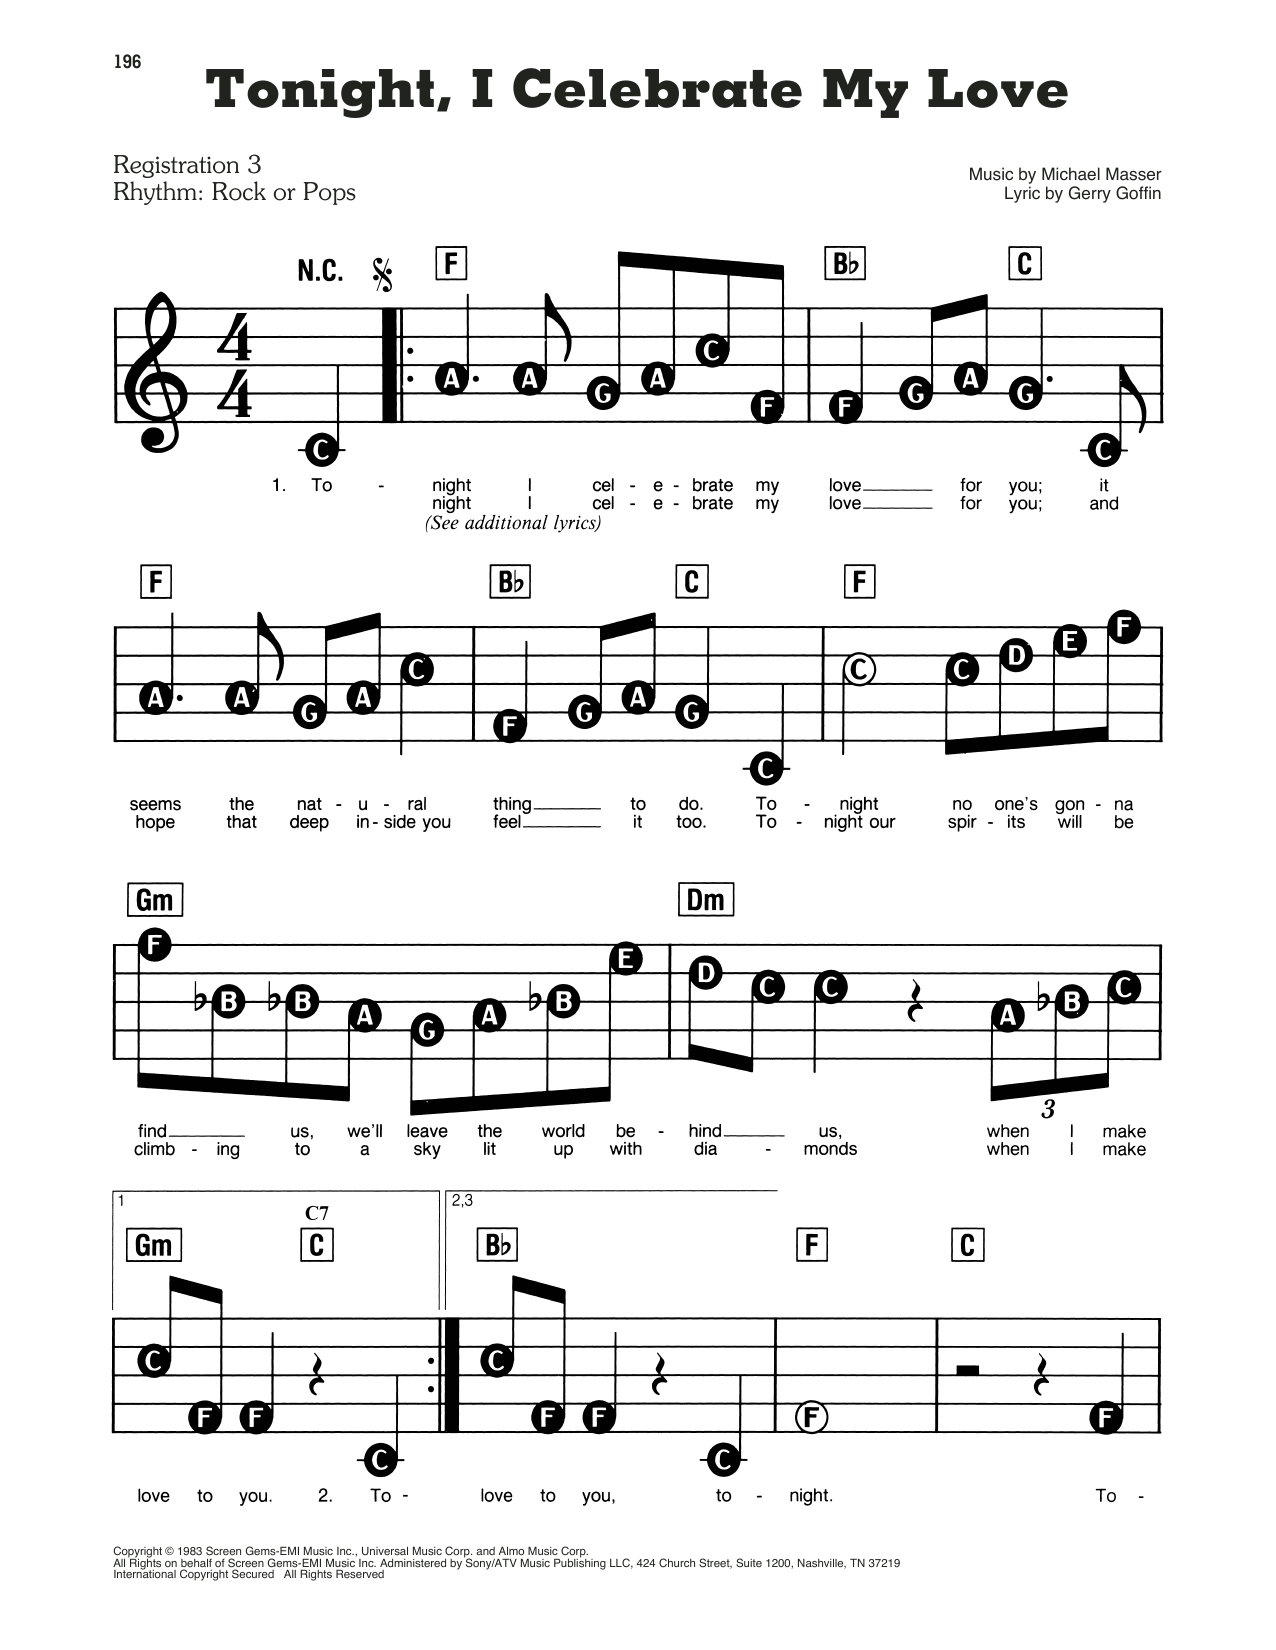 Peabo Bryson & Roberta Flack Tonight, I Celebrate My Love sheet music preview music notes and score for E-Z Play Today including 2 page(s)